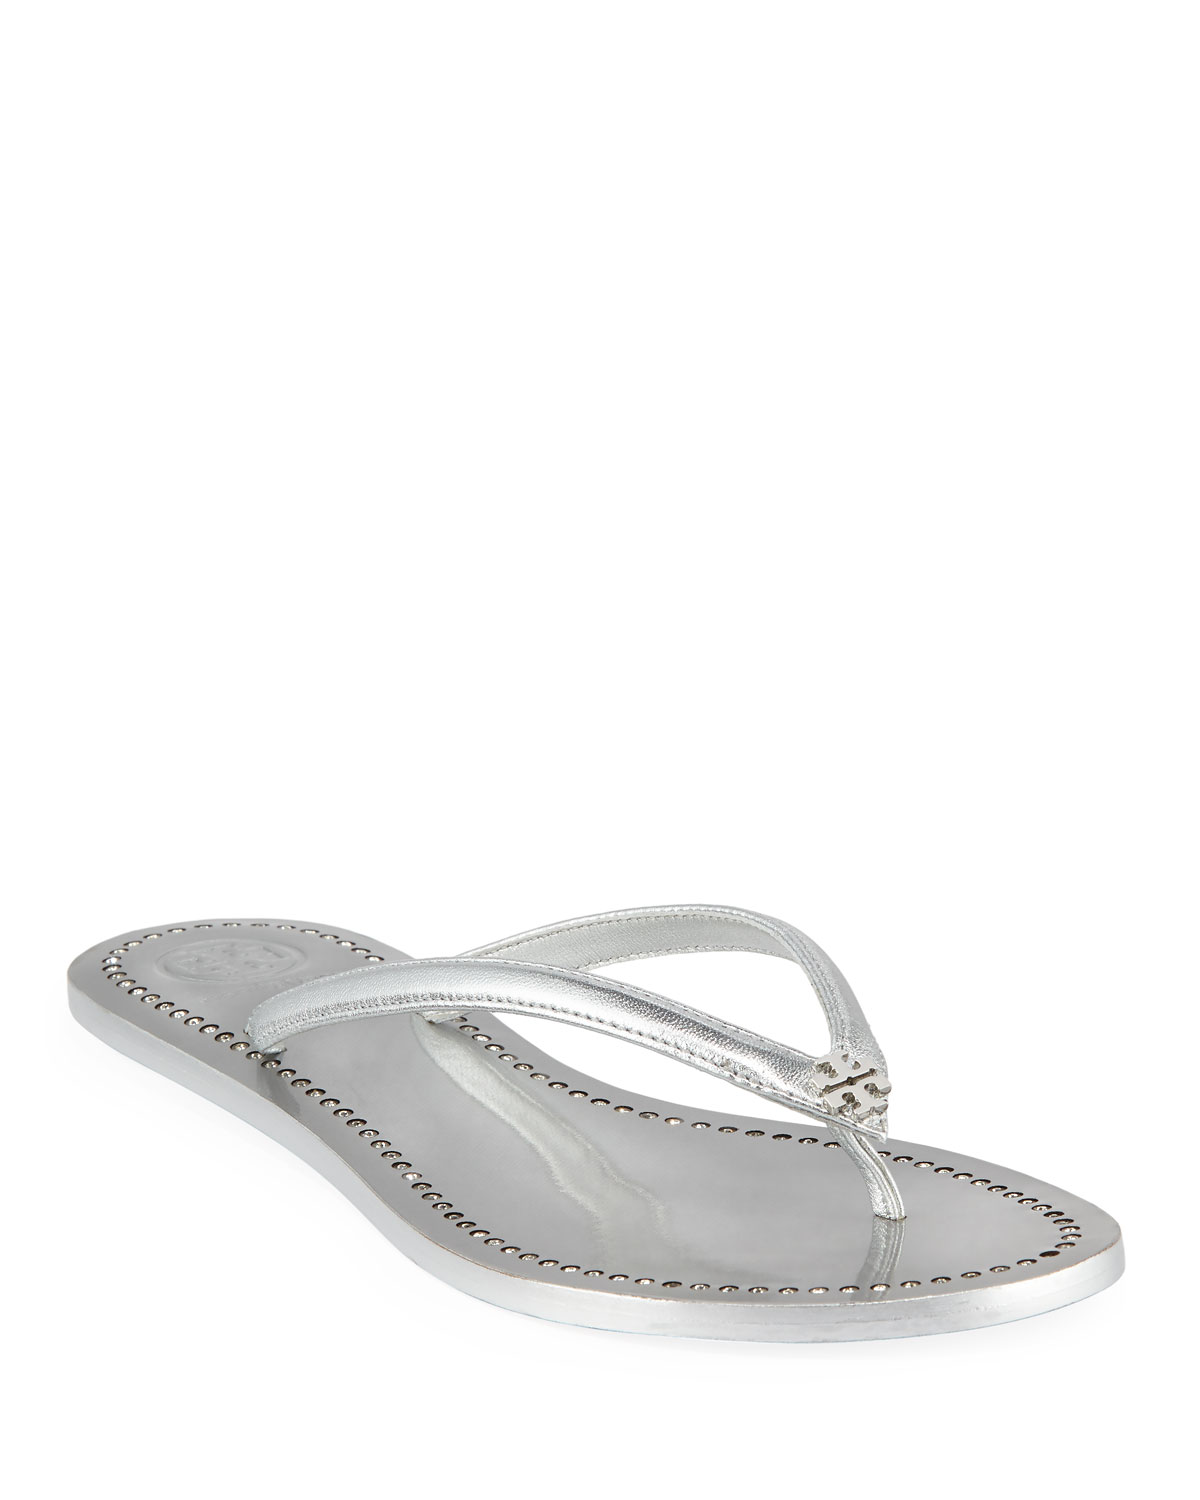 6121c2d3fd03 Tory Burch Liana Flat Metallic Leather Thong Sandals